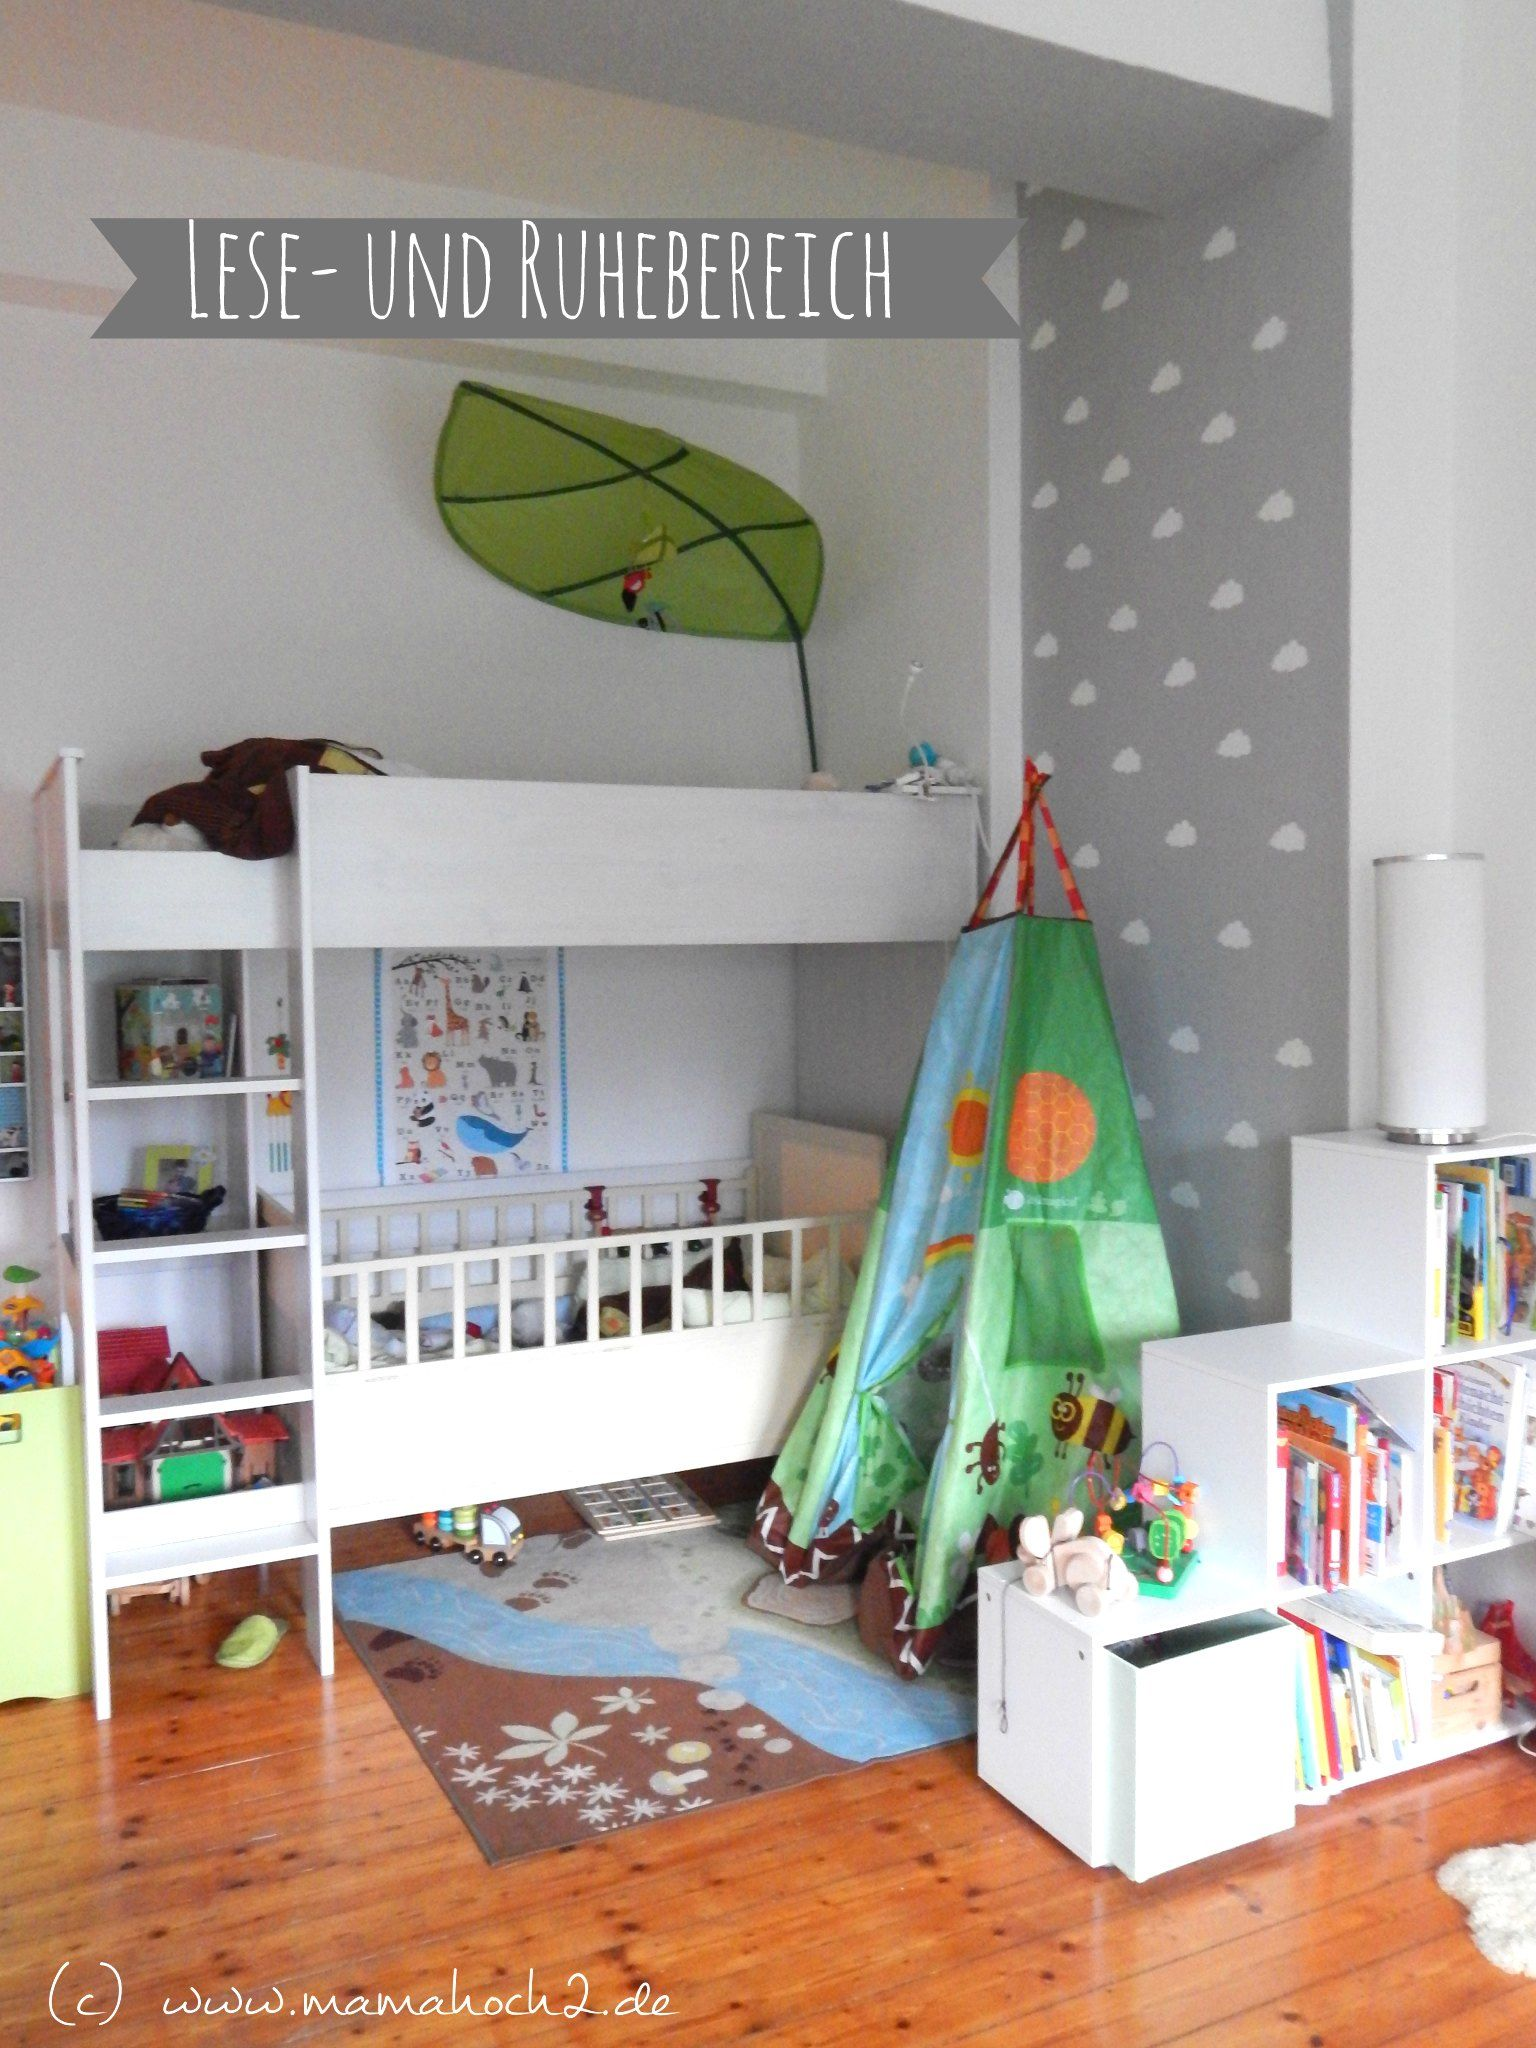 kinderzimmer f r zwei lausebengel kinderzimmerideen mamahoch2 kids pinterest. Black Bedroom Furniture Sets. Home Design Ideas